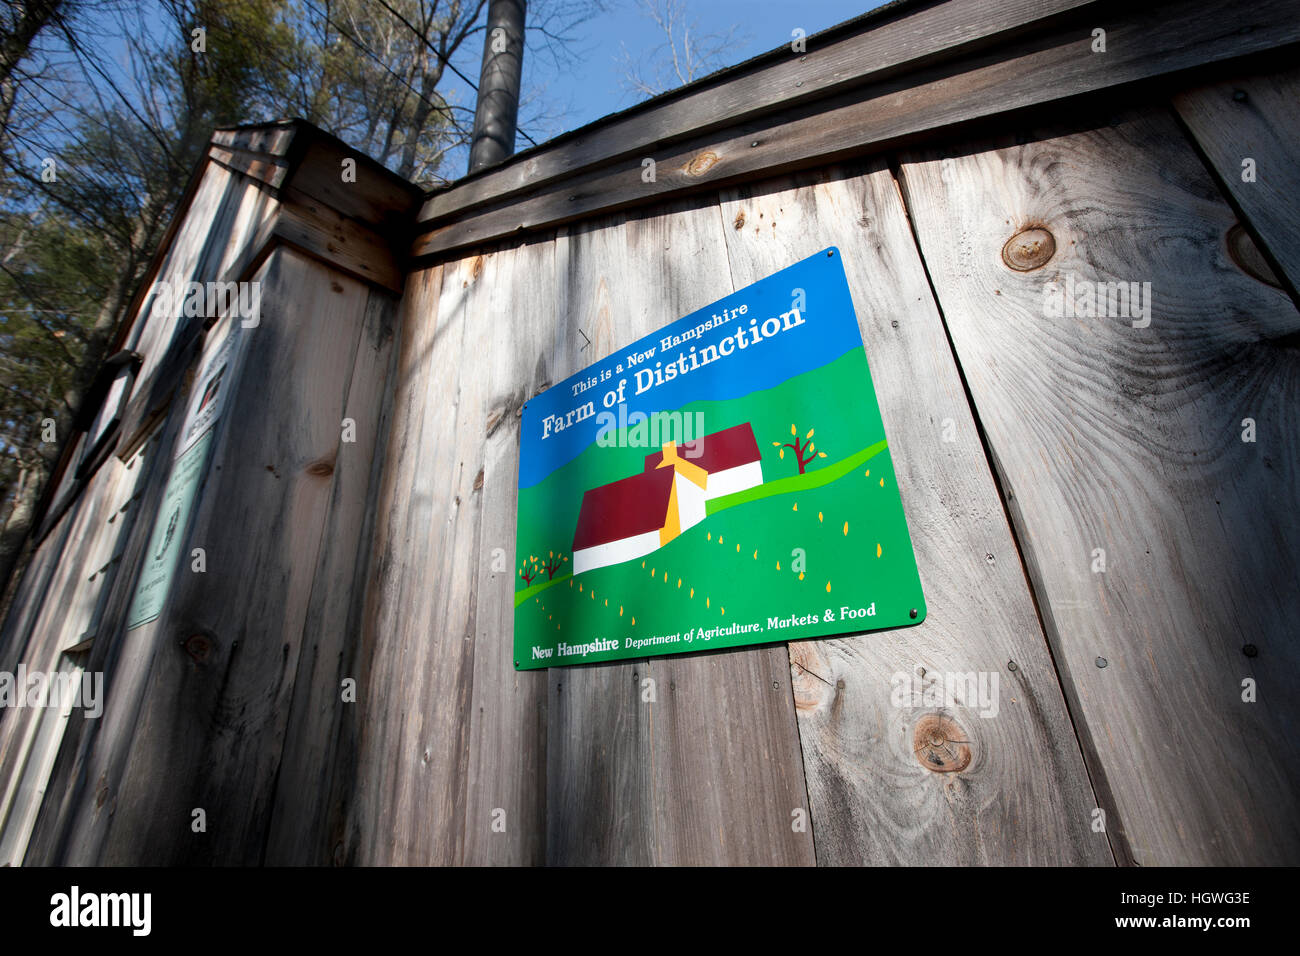 Farm of Distinction sign at Folsom's Sugar House in Chester, New Hampshire. - Stock Image